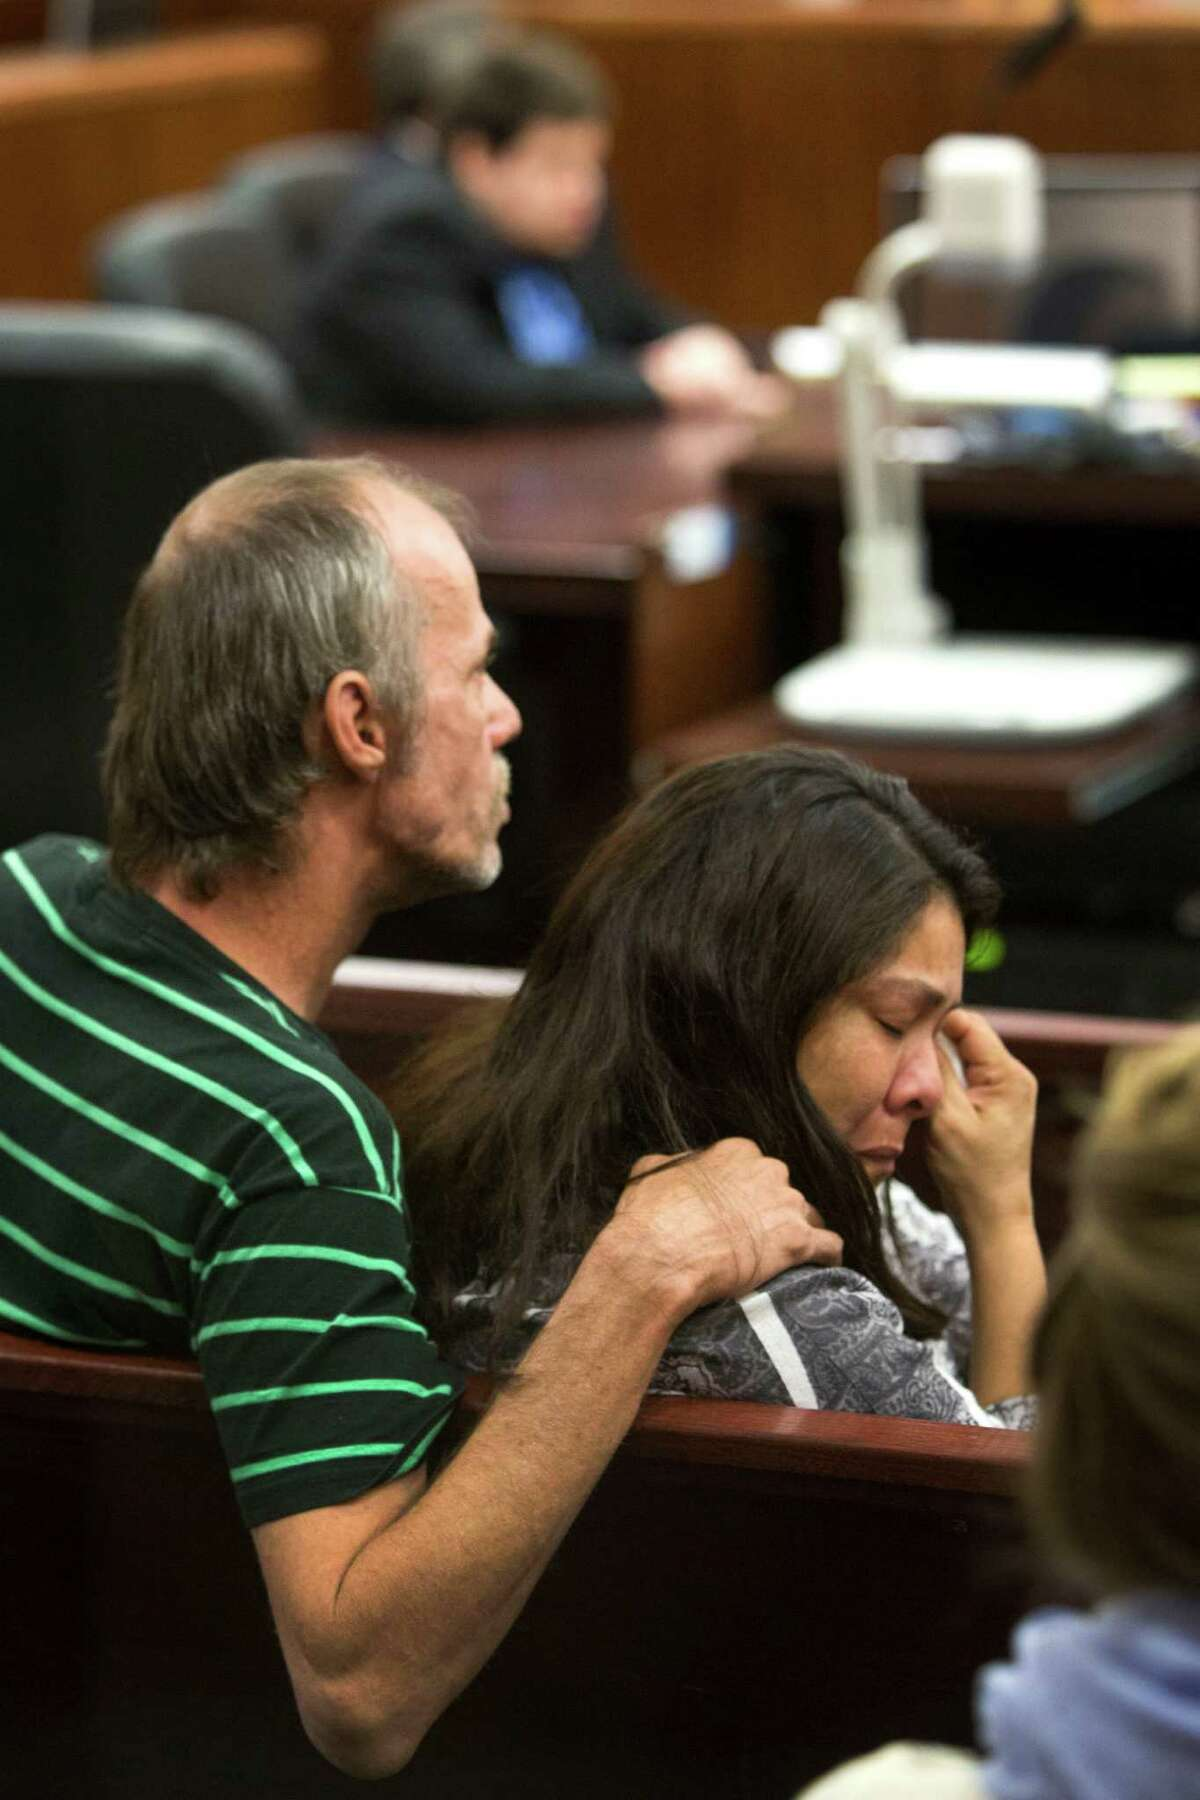 Monica Shiel, aunt of defendant, Justin Wayne Parris, 27, wipes a tear from her eye as she listens to testimony during Parris' murder trial at the Harris County Courthouse Tuesday, June 10, 2014, in Houston. Prosecutors Tuesday said Parris is on trial for the murder of his 81-year-old grandfather, in which he allegedly decapitated him with hedge clippers. Police found Justin Wayne Parris with blood smears on his pants and shirt at the elder man's home in the 900 block of Lamonte on November 6, 2009, according to court records.